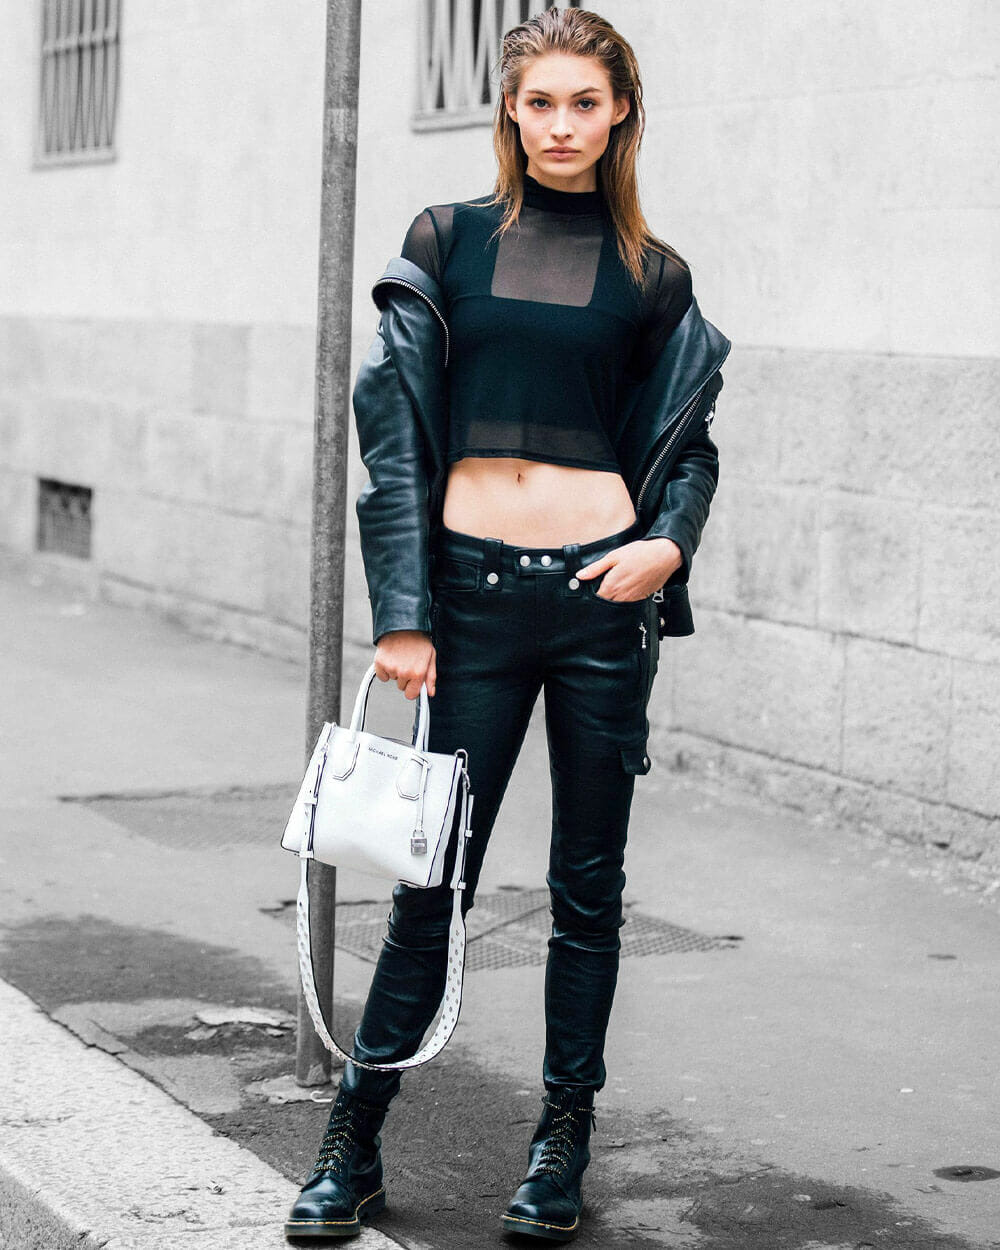 Mesh Tops latest fashion trends of 2021